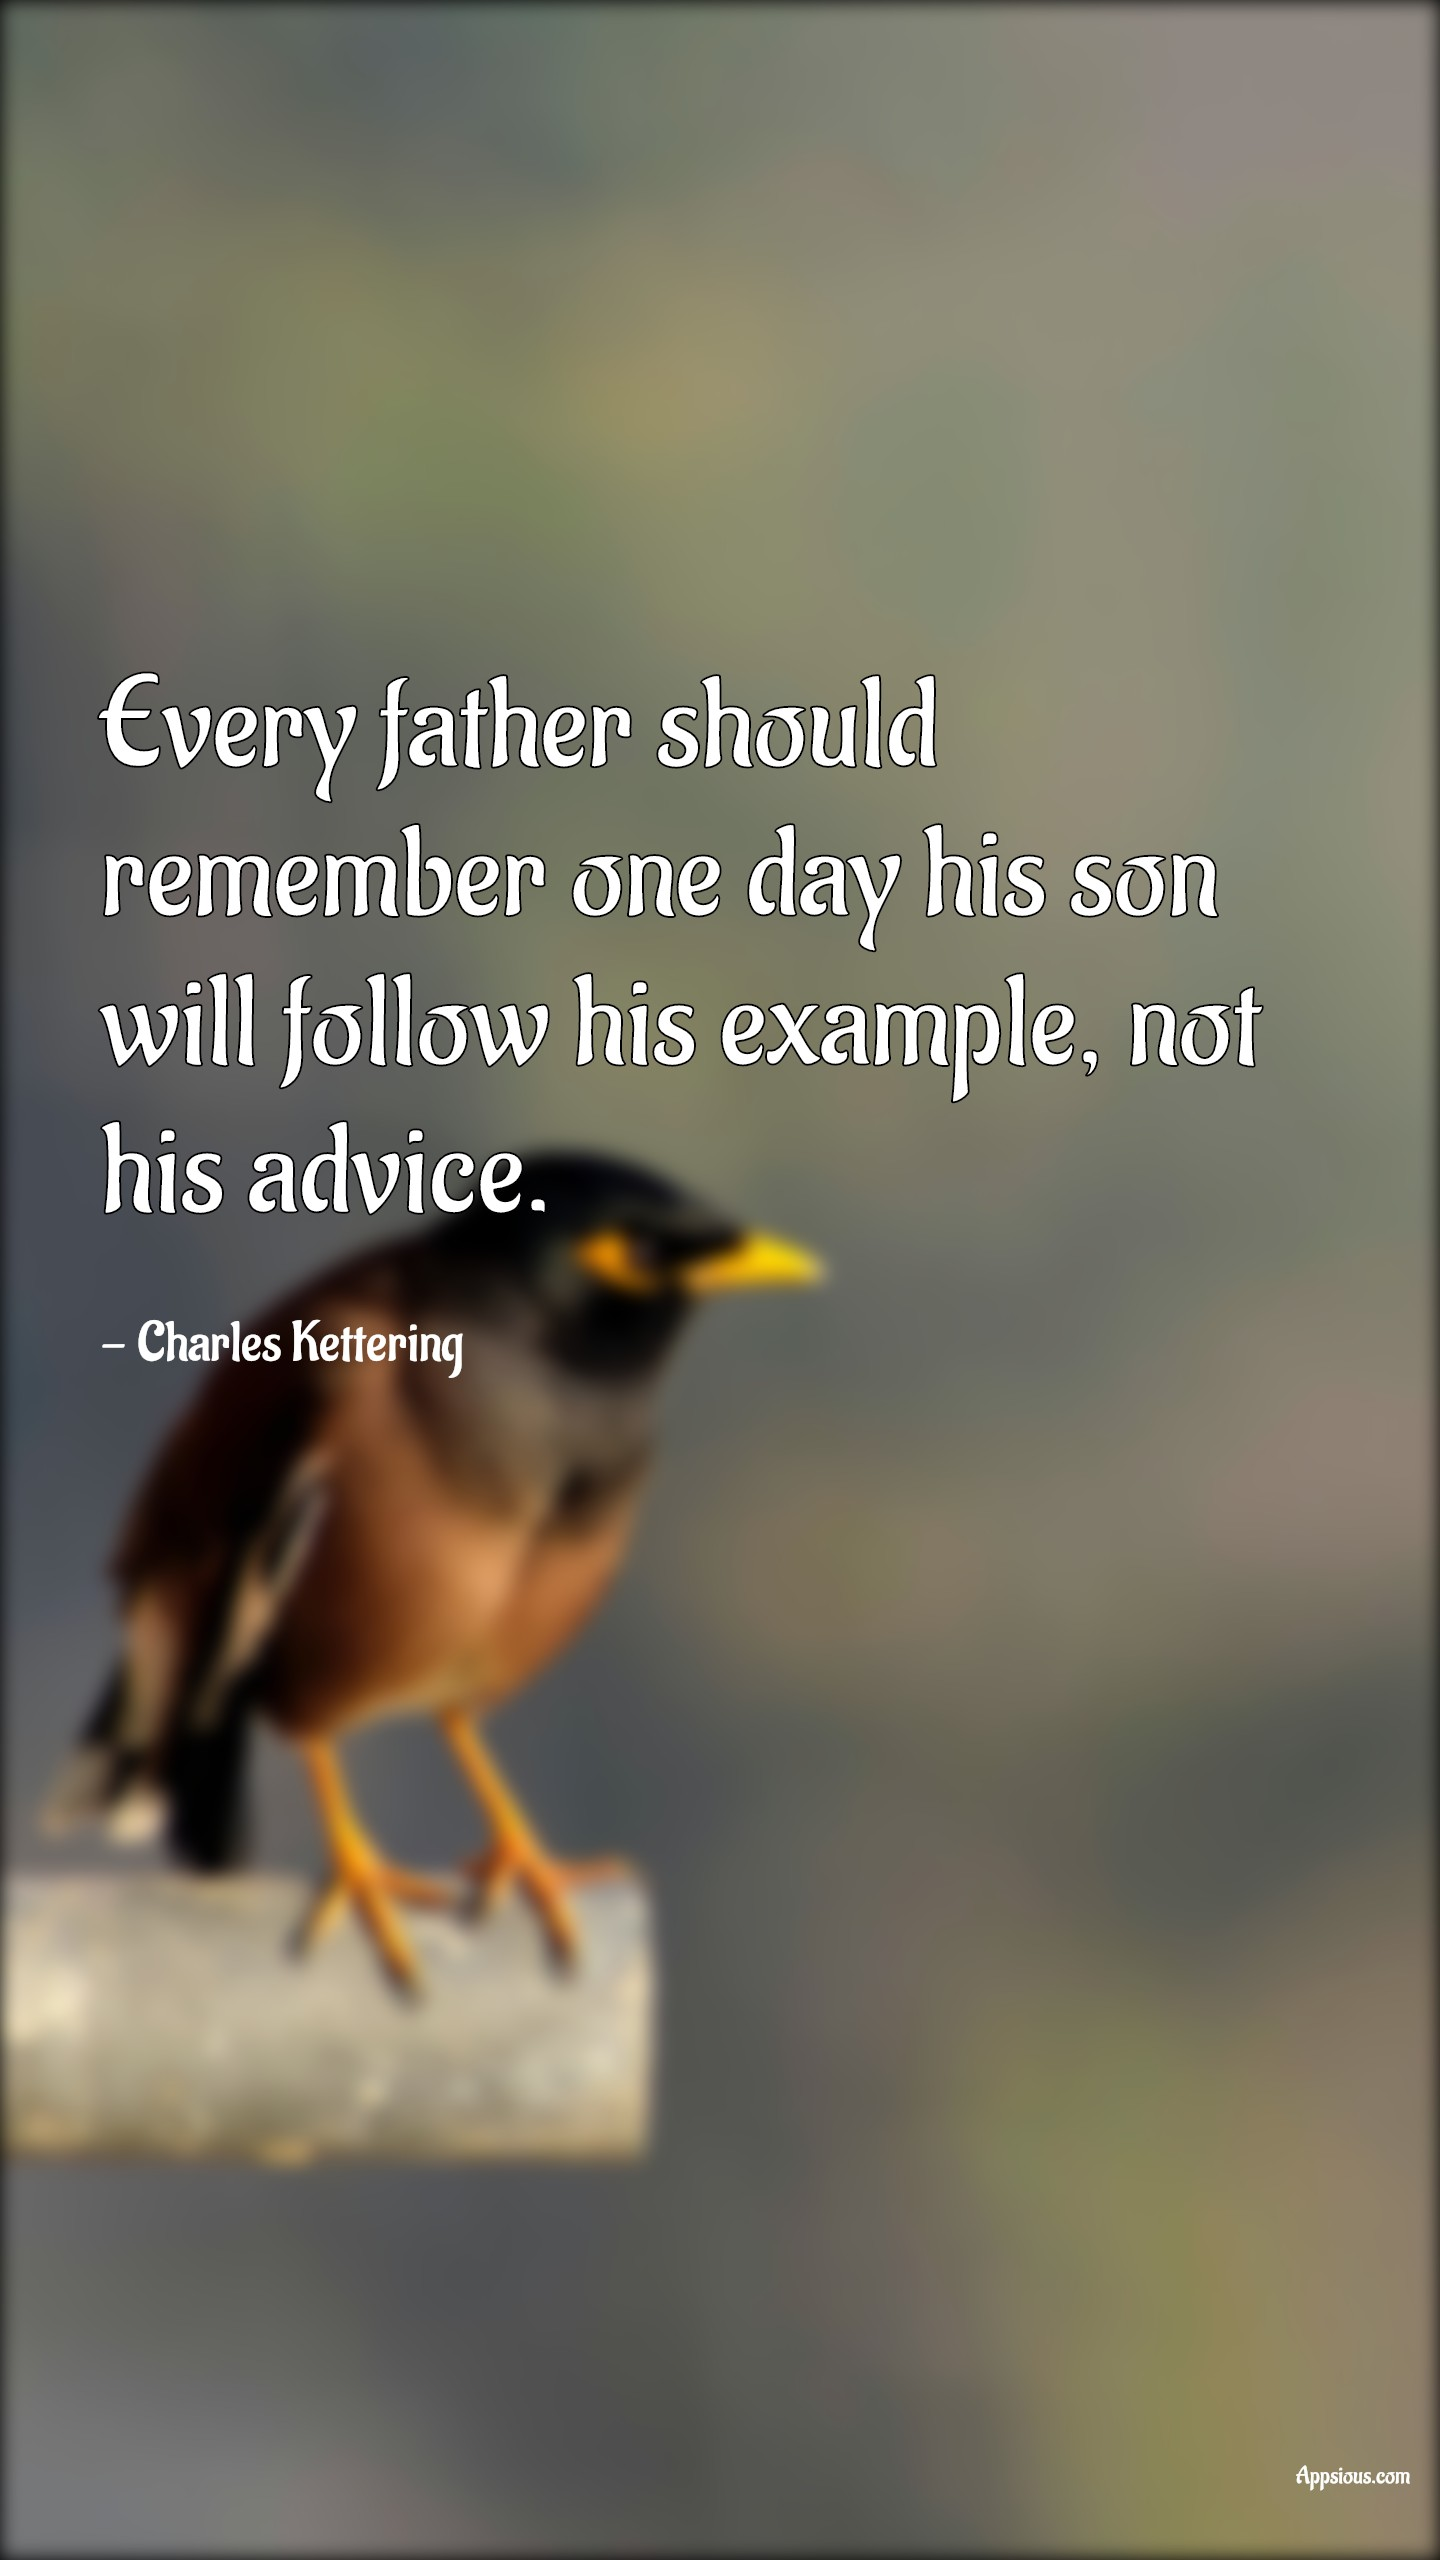 Every father should remember one day his son will follow his example, not his advice.